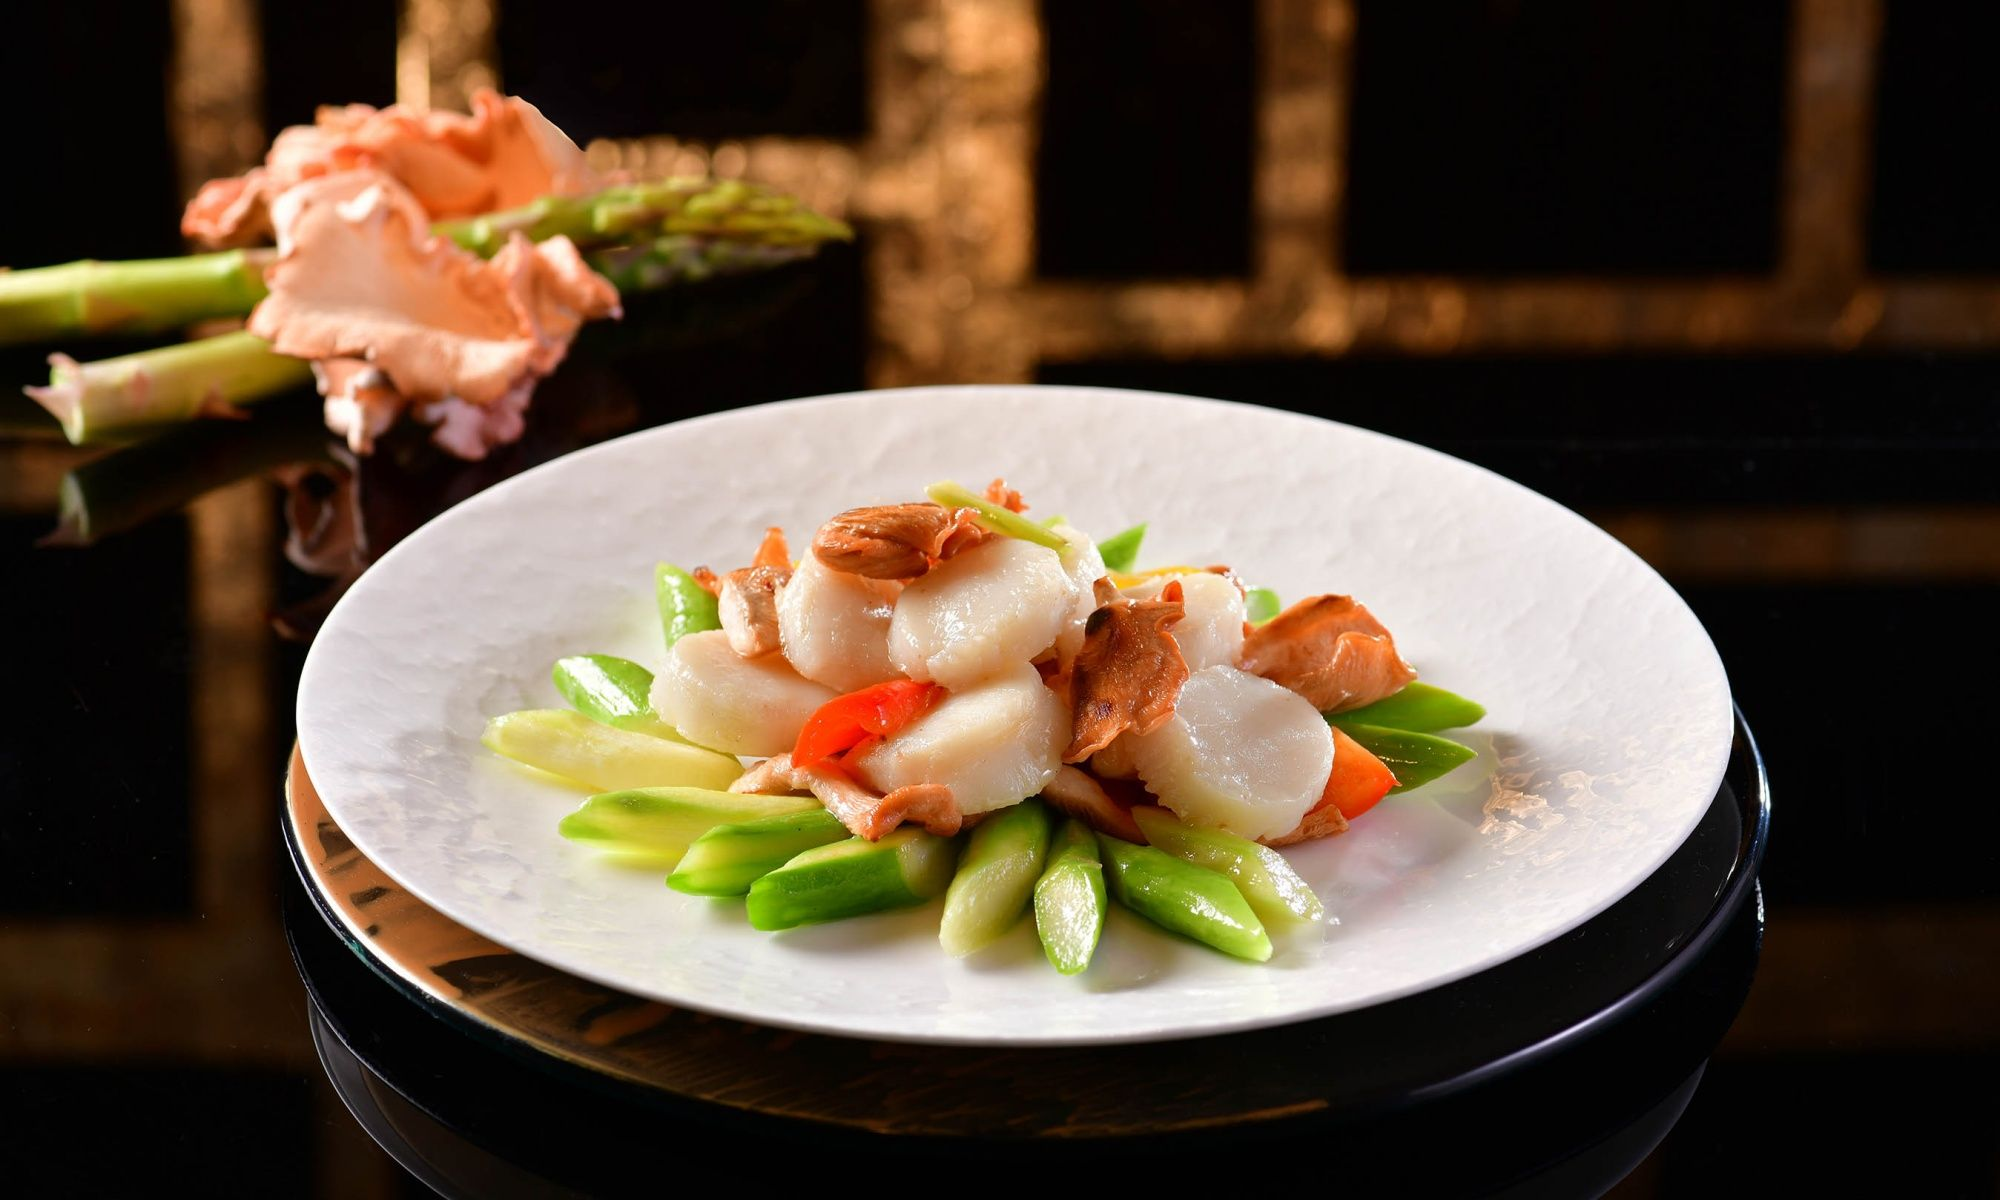 Ming Court Introduces New Seasonal Menu With Locally-Sourced Ingredients